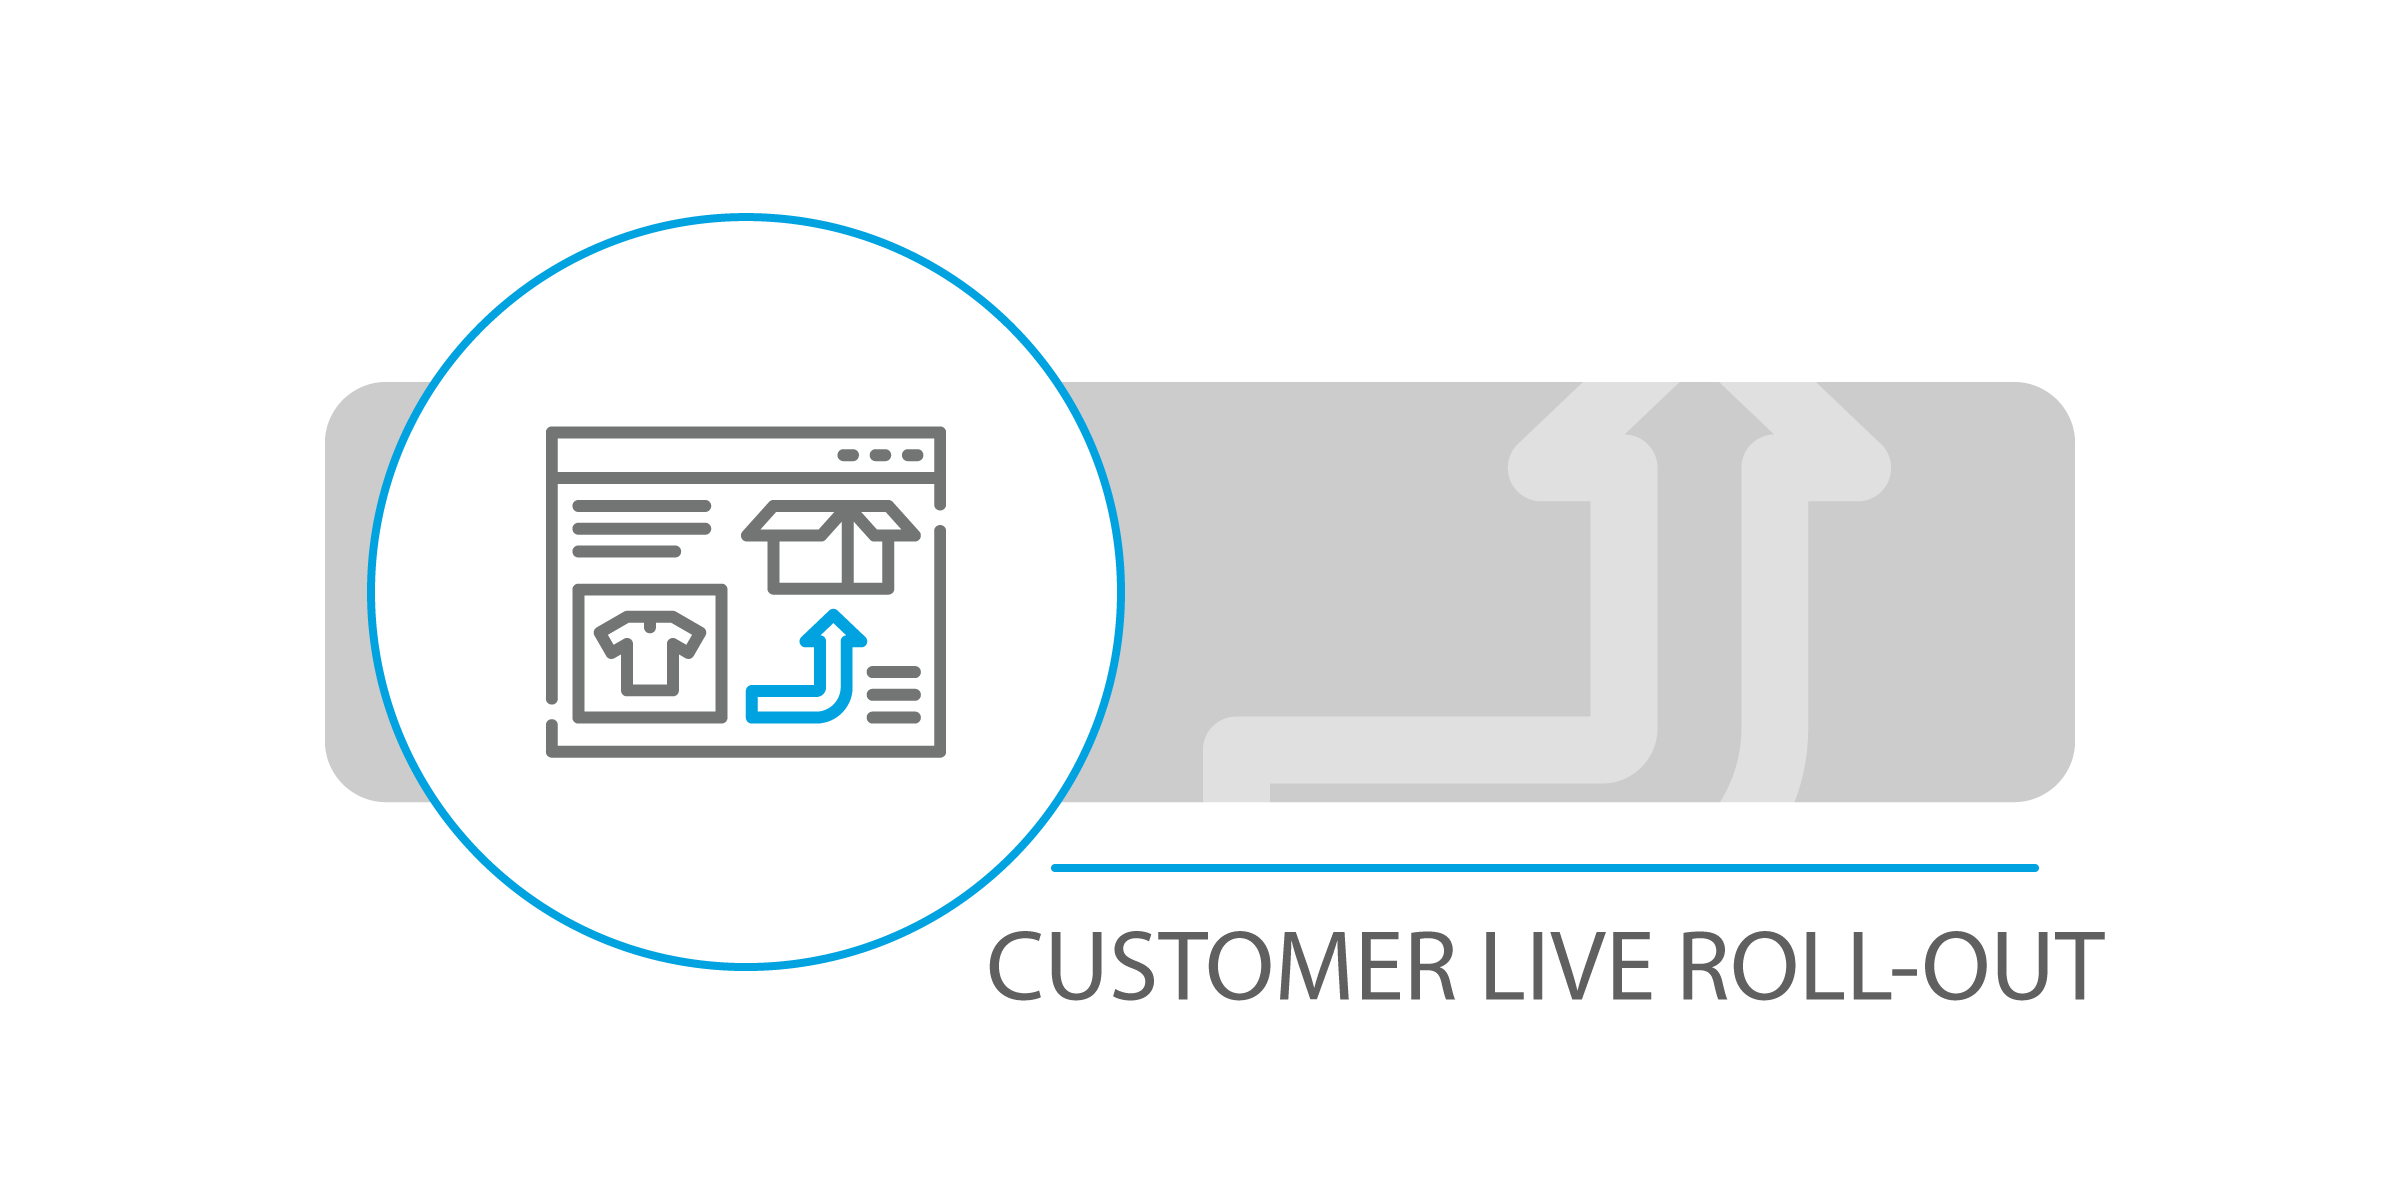 Customer Roll-Out Image